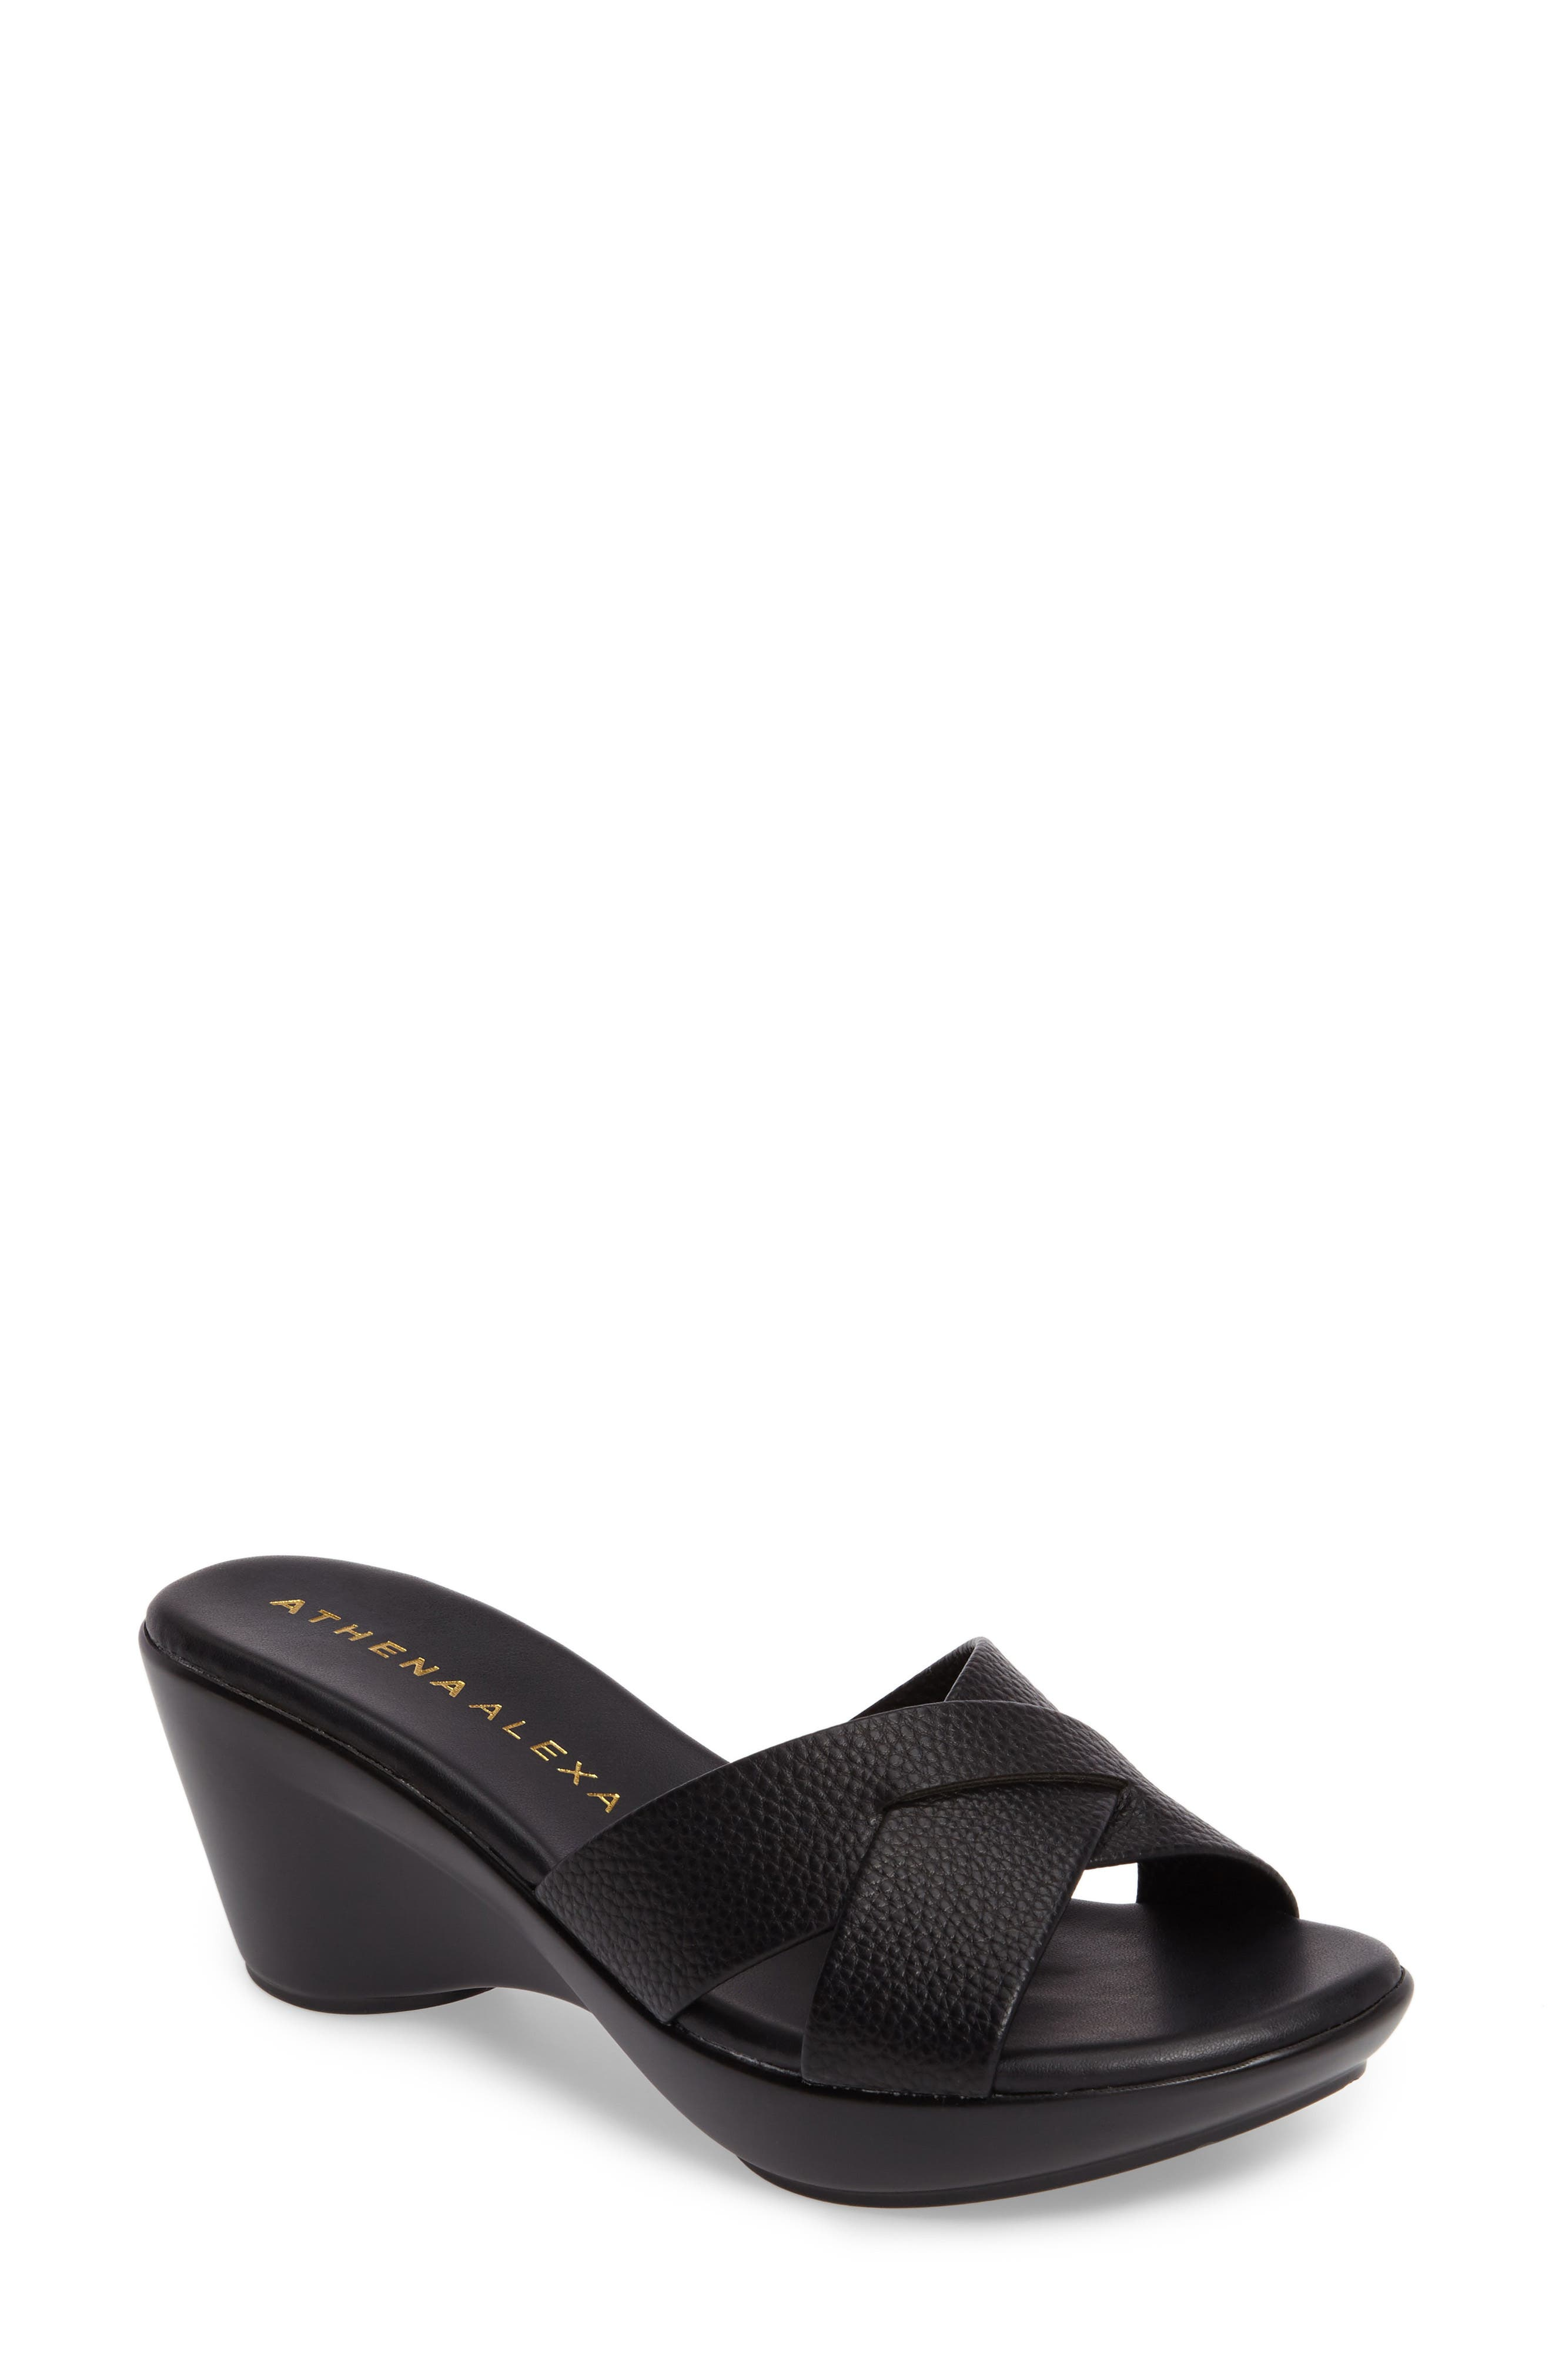 Main Image - Athena Alexander Verna Wedge Slide (Women)